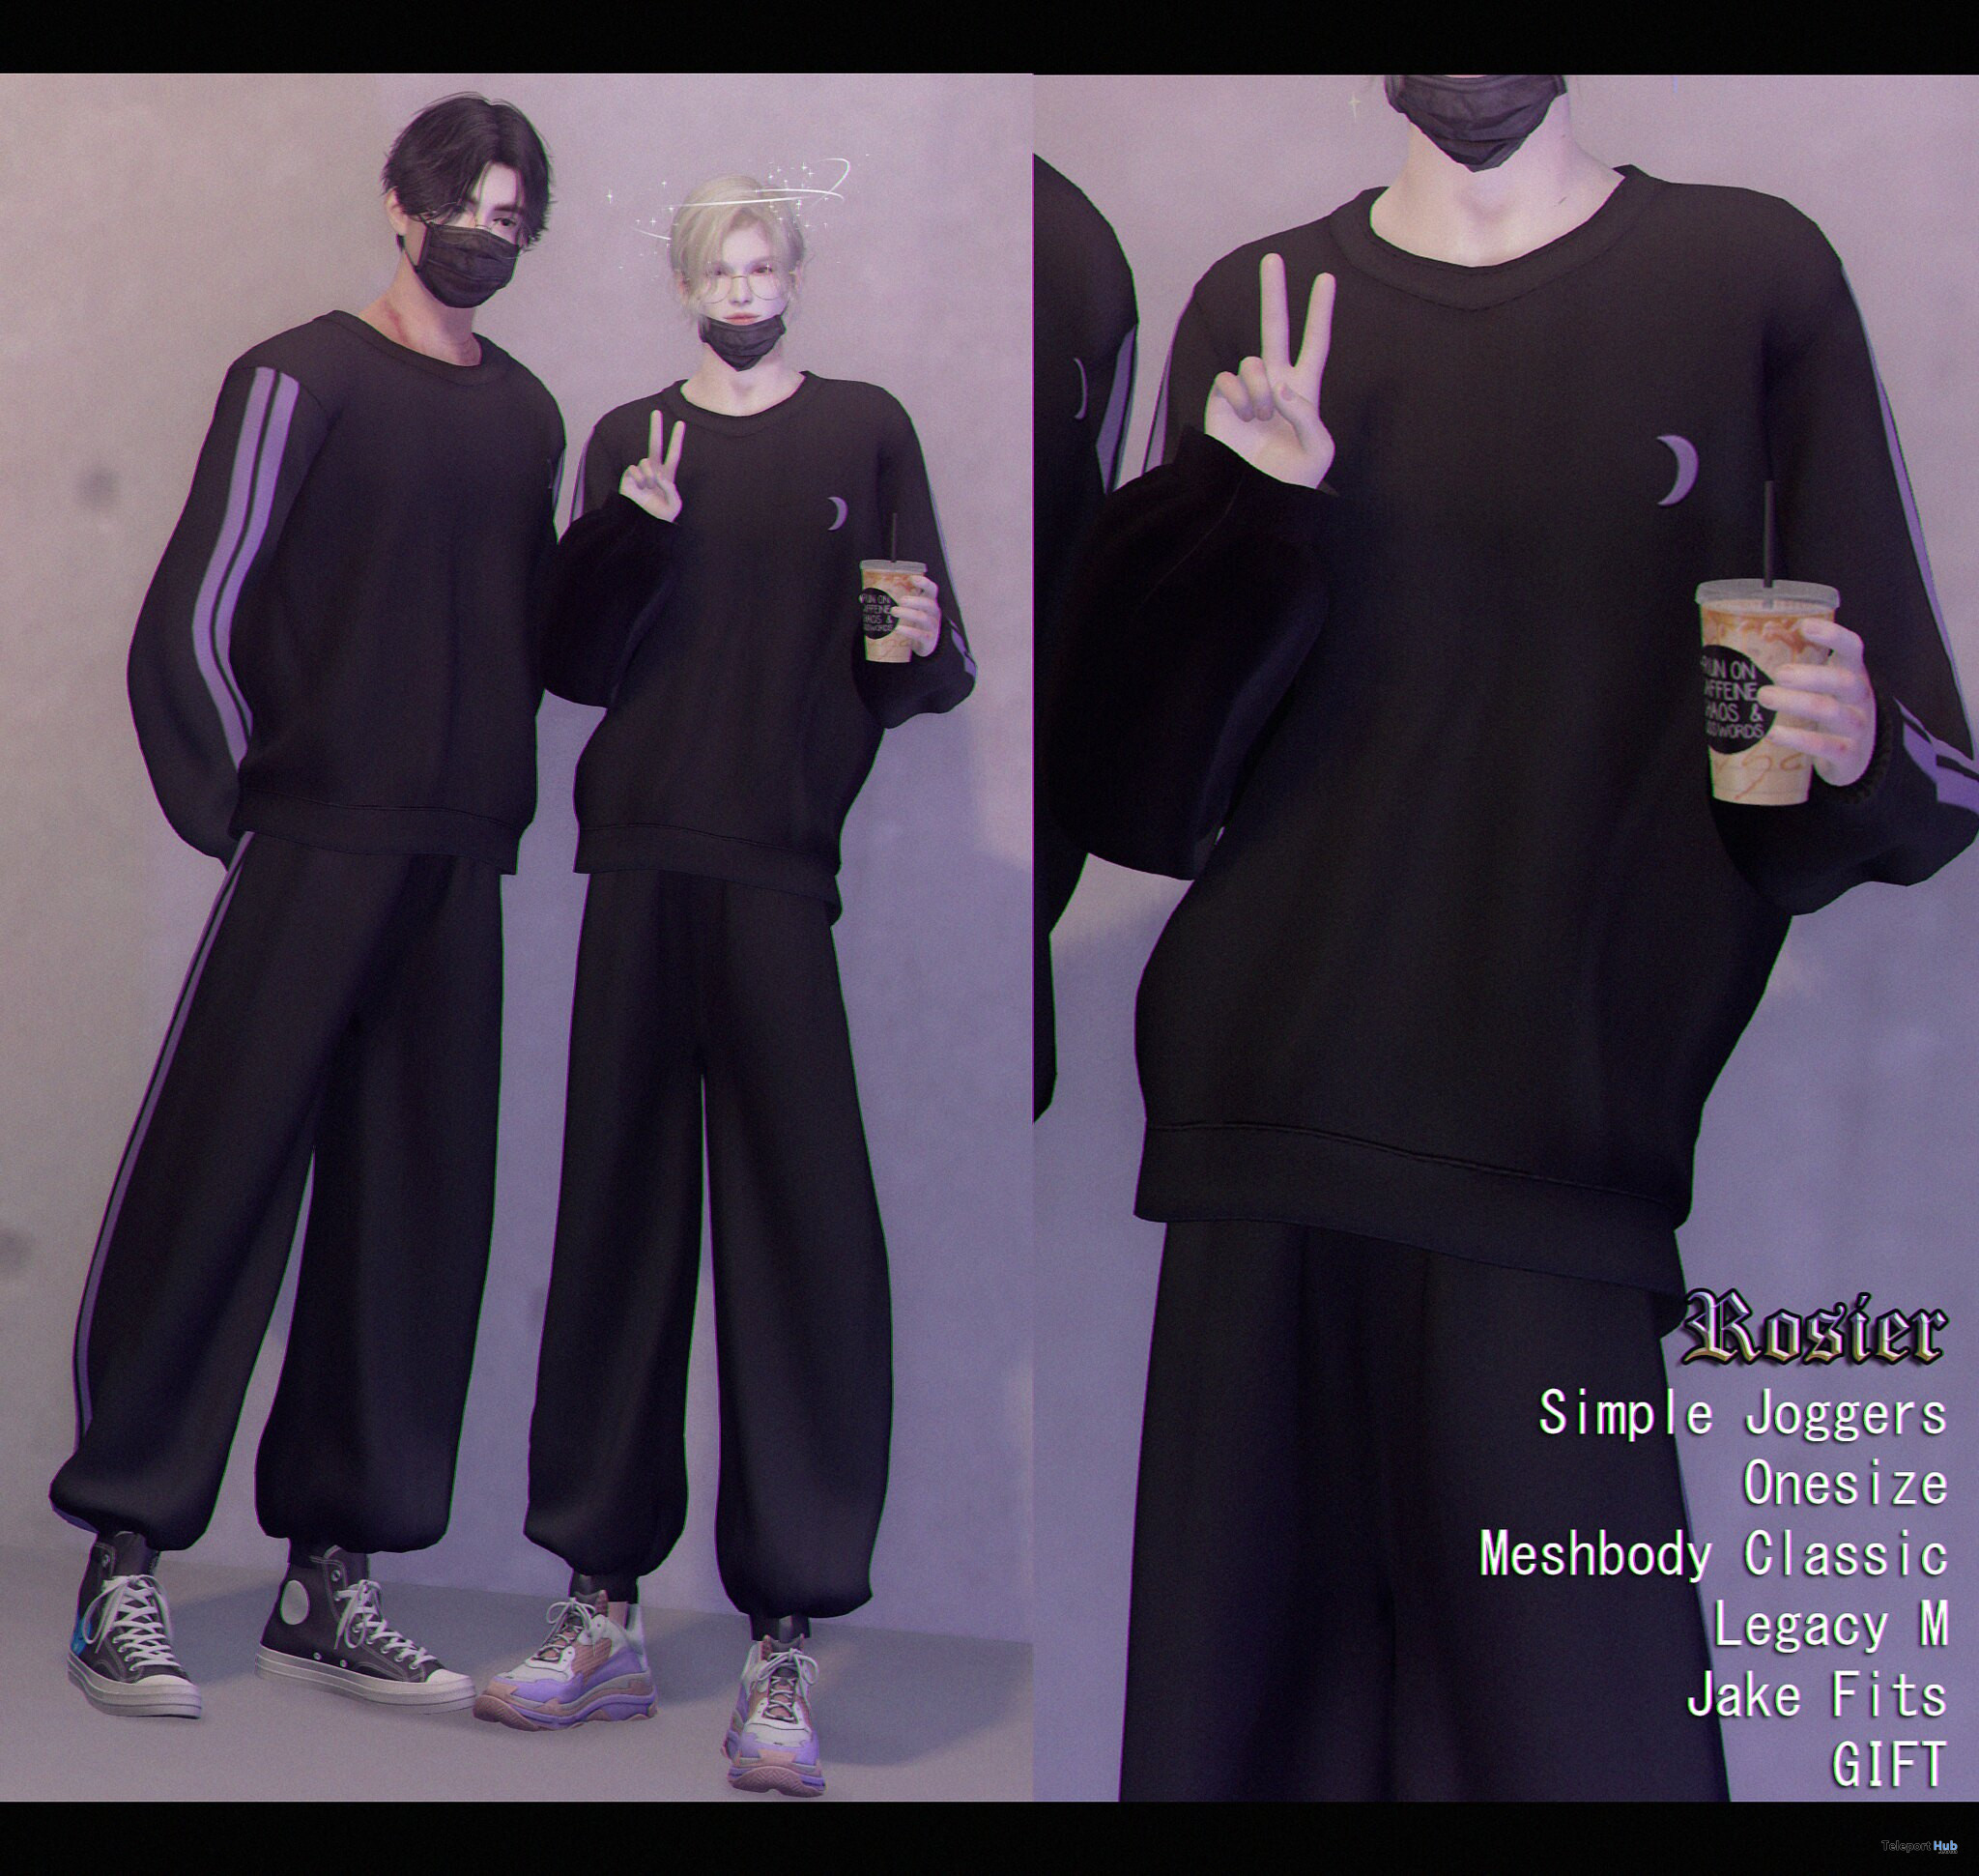 Male Onesie Joggers August 2021 Gift by {Rosier} - Teleport Hub - teleporthub.com